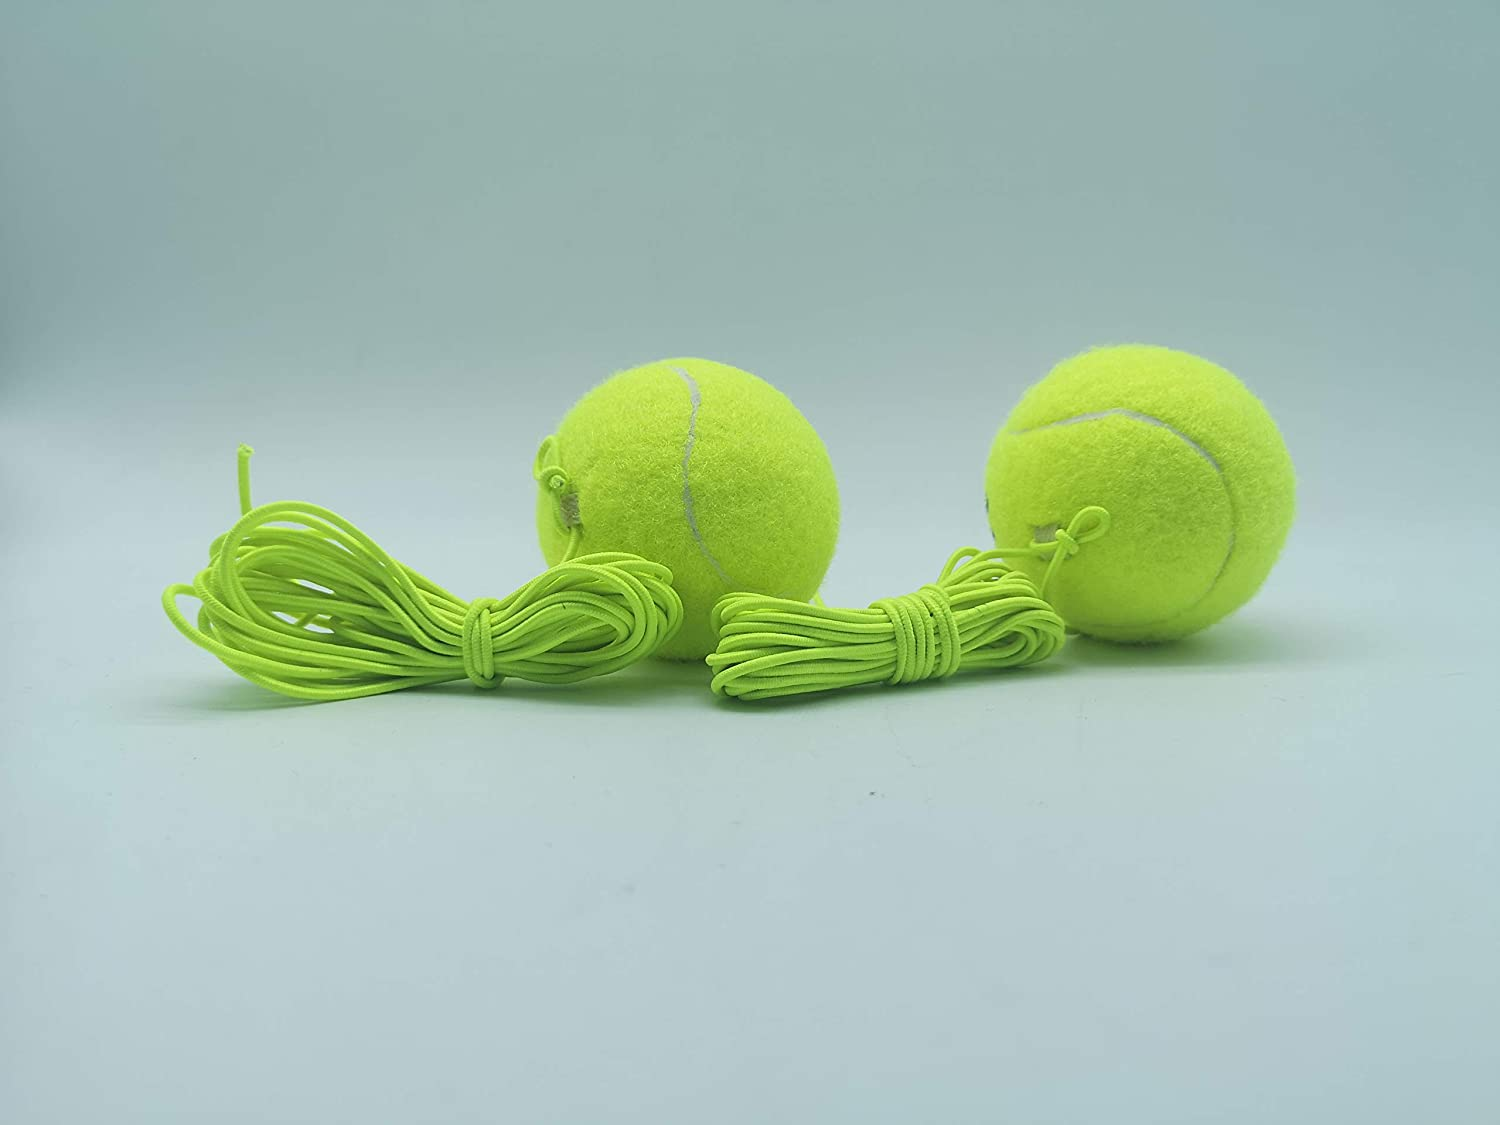 sale 2 Pack Tennis Trainer Balls Player with Single String Manufacturer regenerated product for